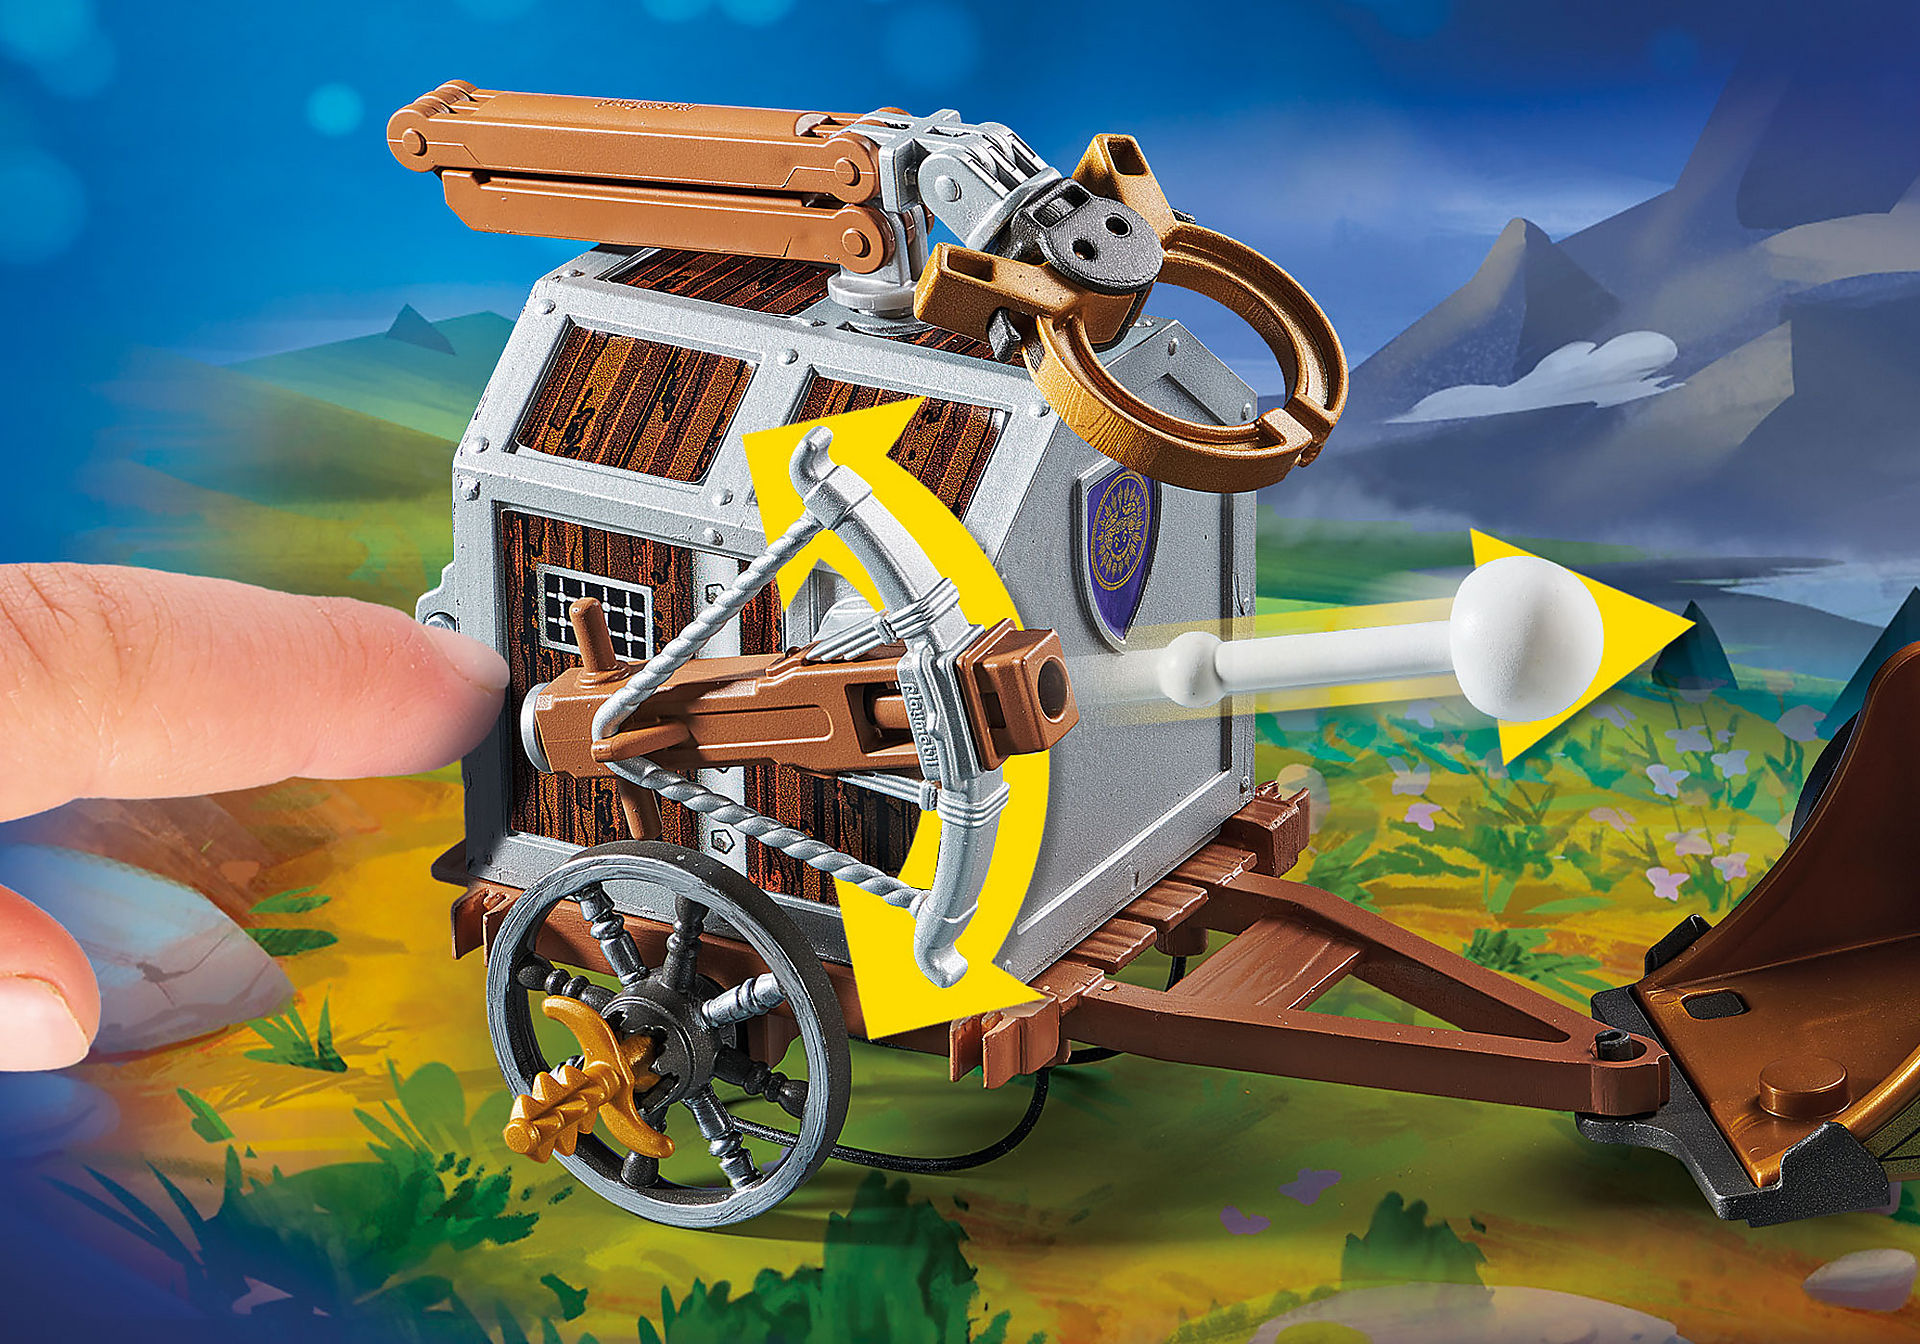 http://media.playmobil.com/i/playmobil/70073_product_extra1/PLAYMOBIL: THE MOVIE Charlie met gevangeniswagon